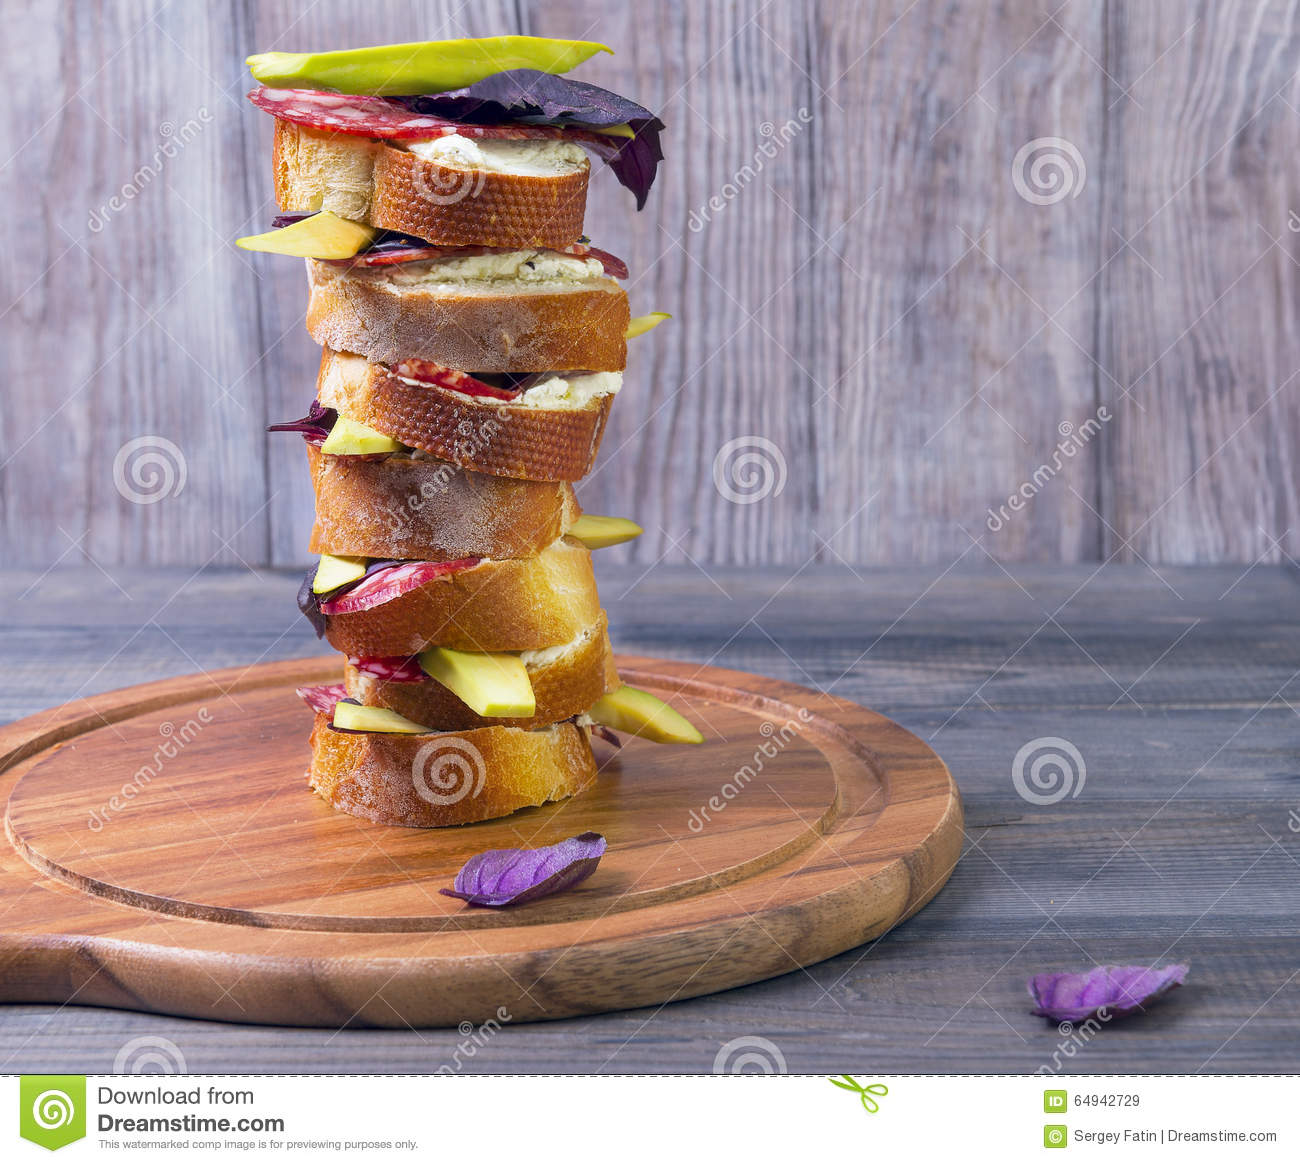 Cooking Small Sandwiches Tapas With Avocado Stock Image